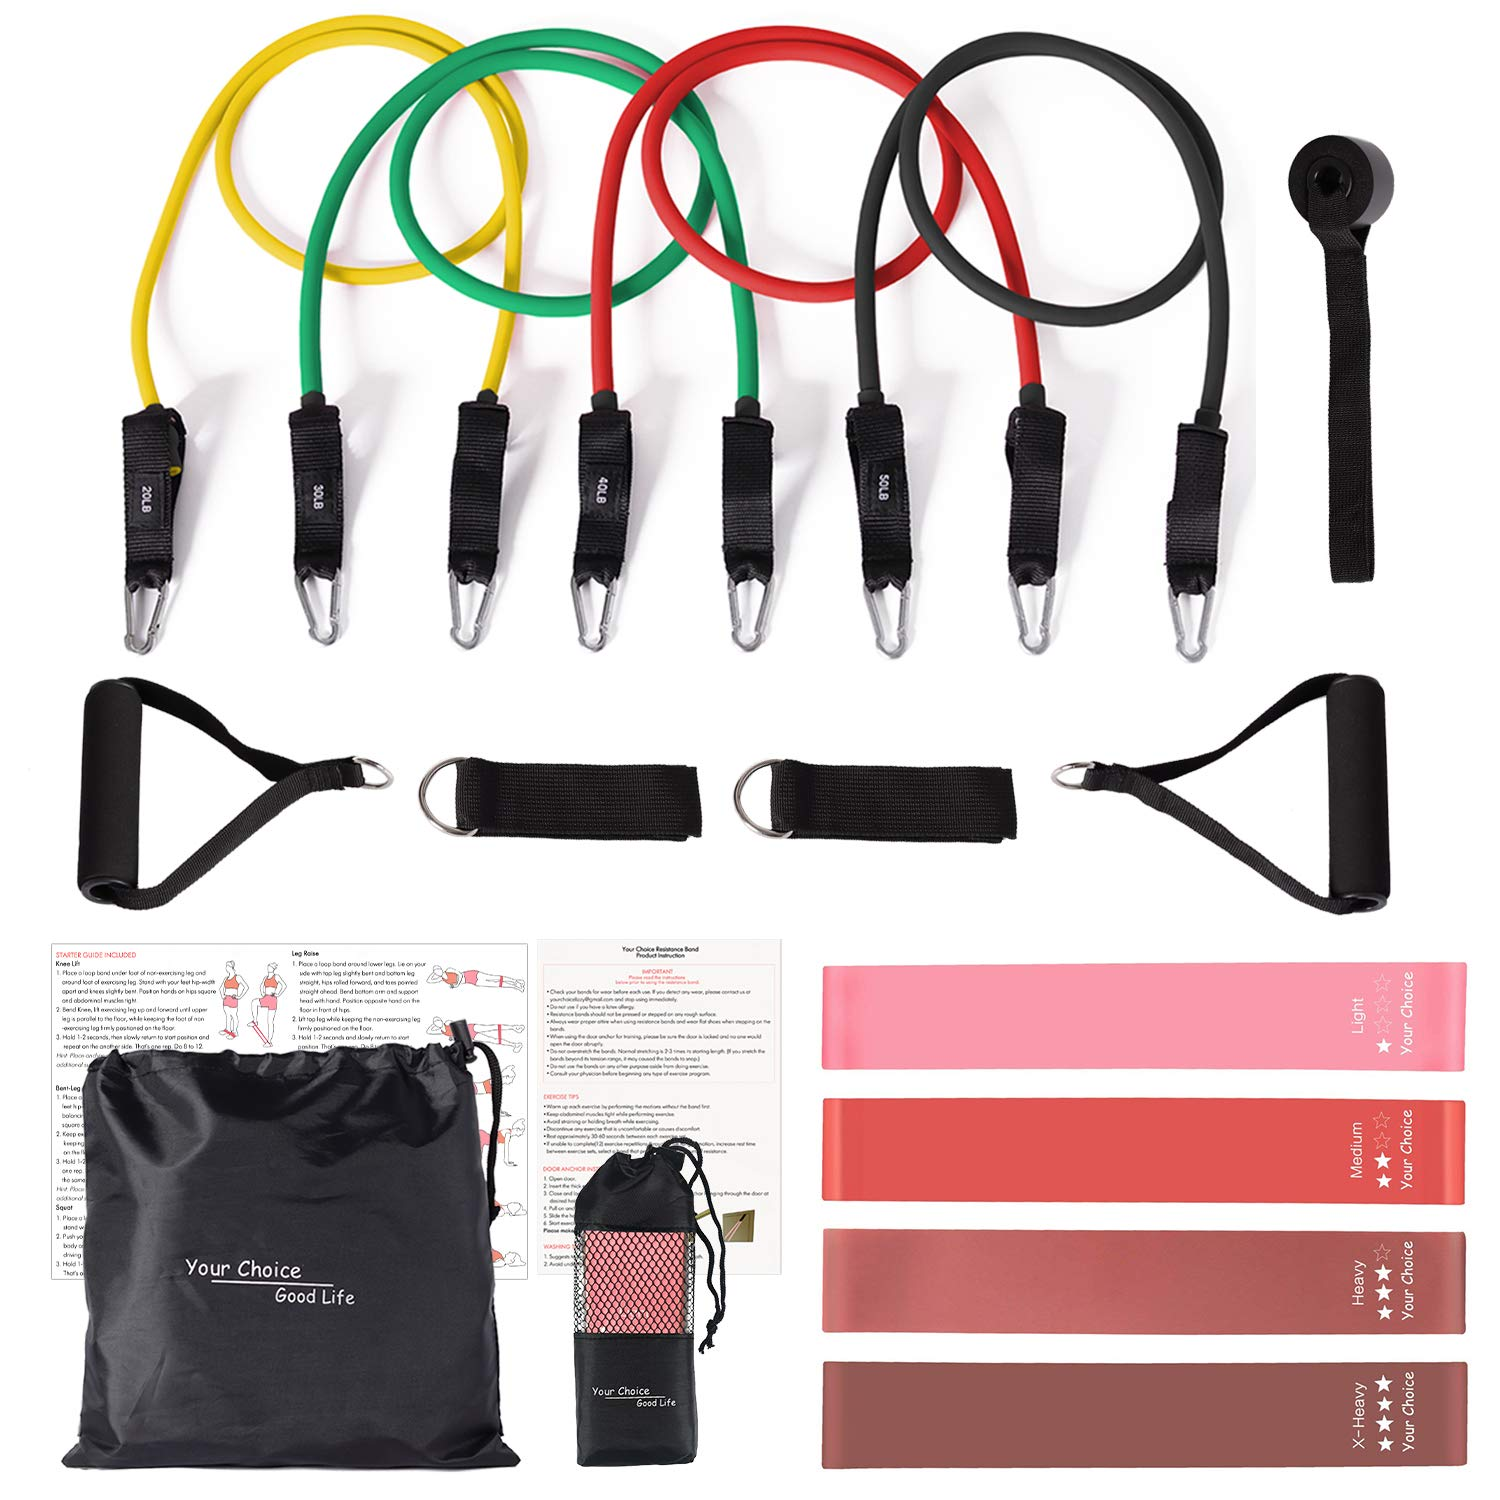 Your Choice 17 pcs Resistance Bands Set with Handle Exercise Bands Tube Workout Bands Booty Bands for Legs